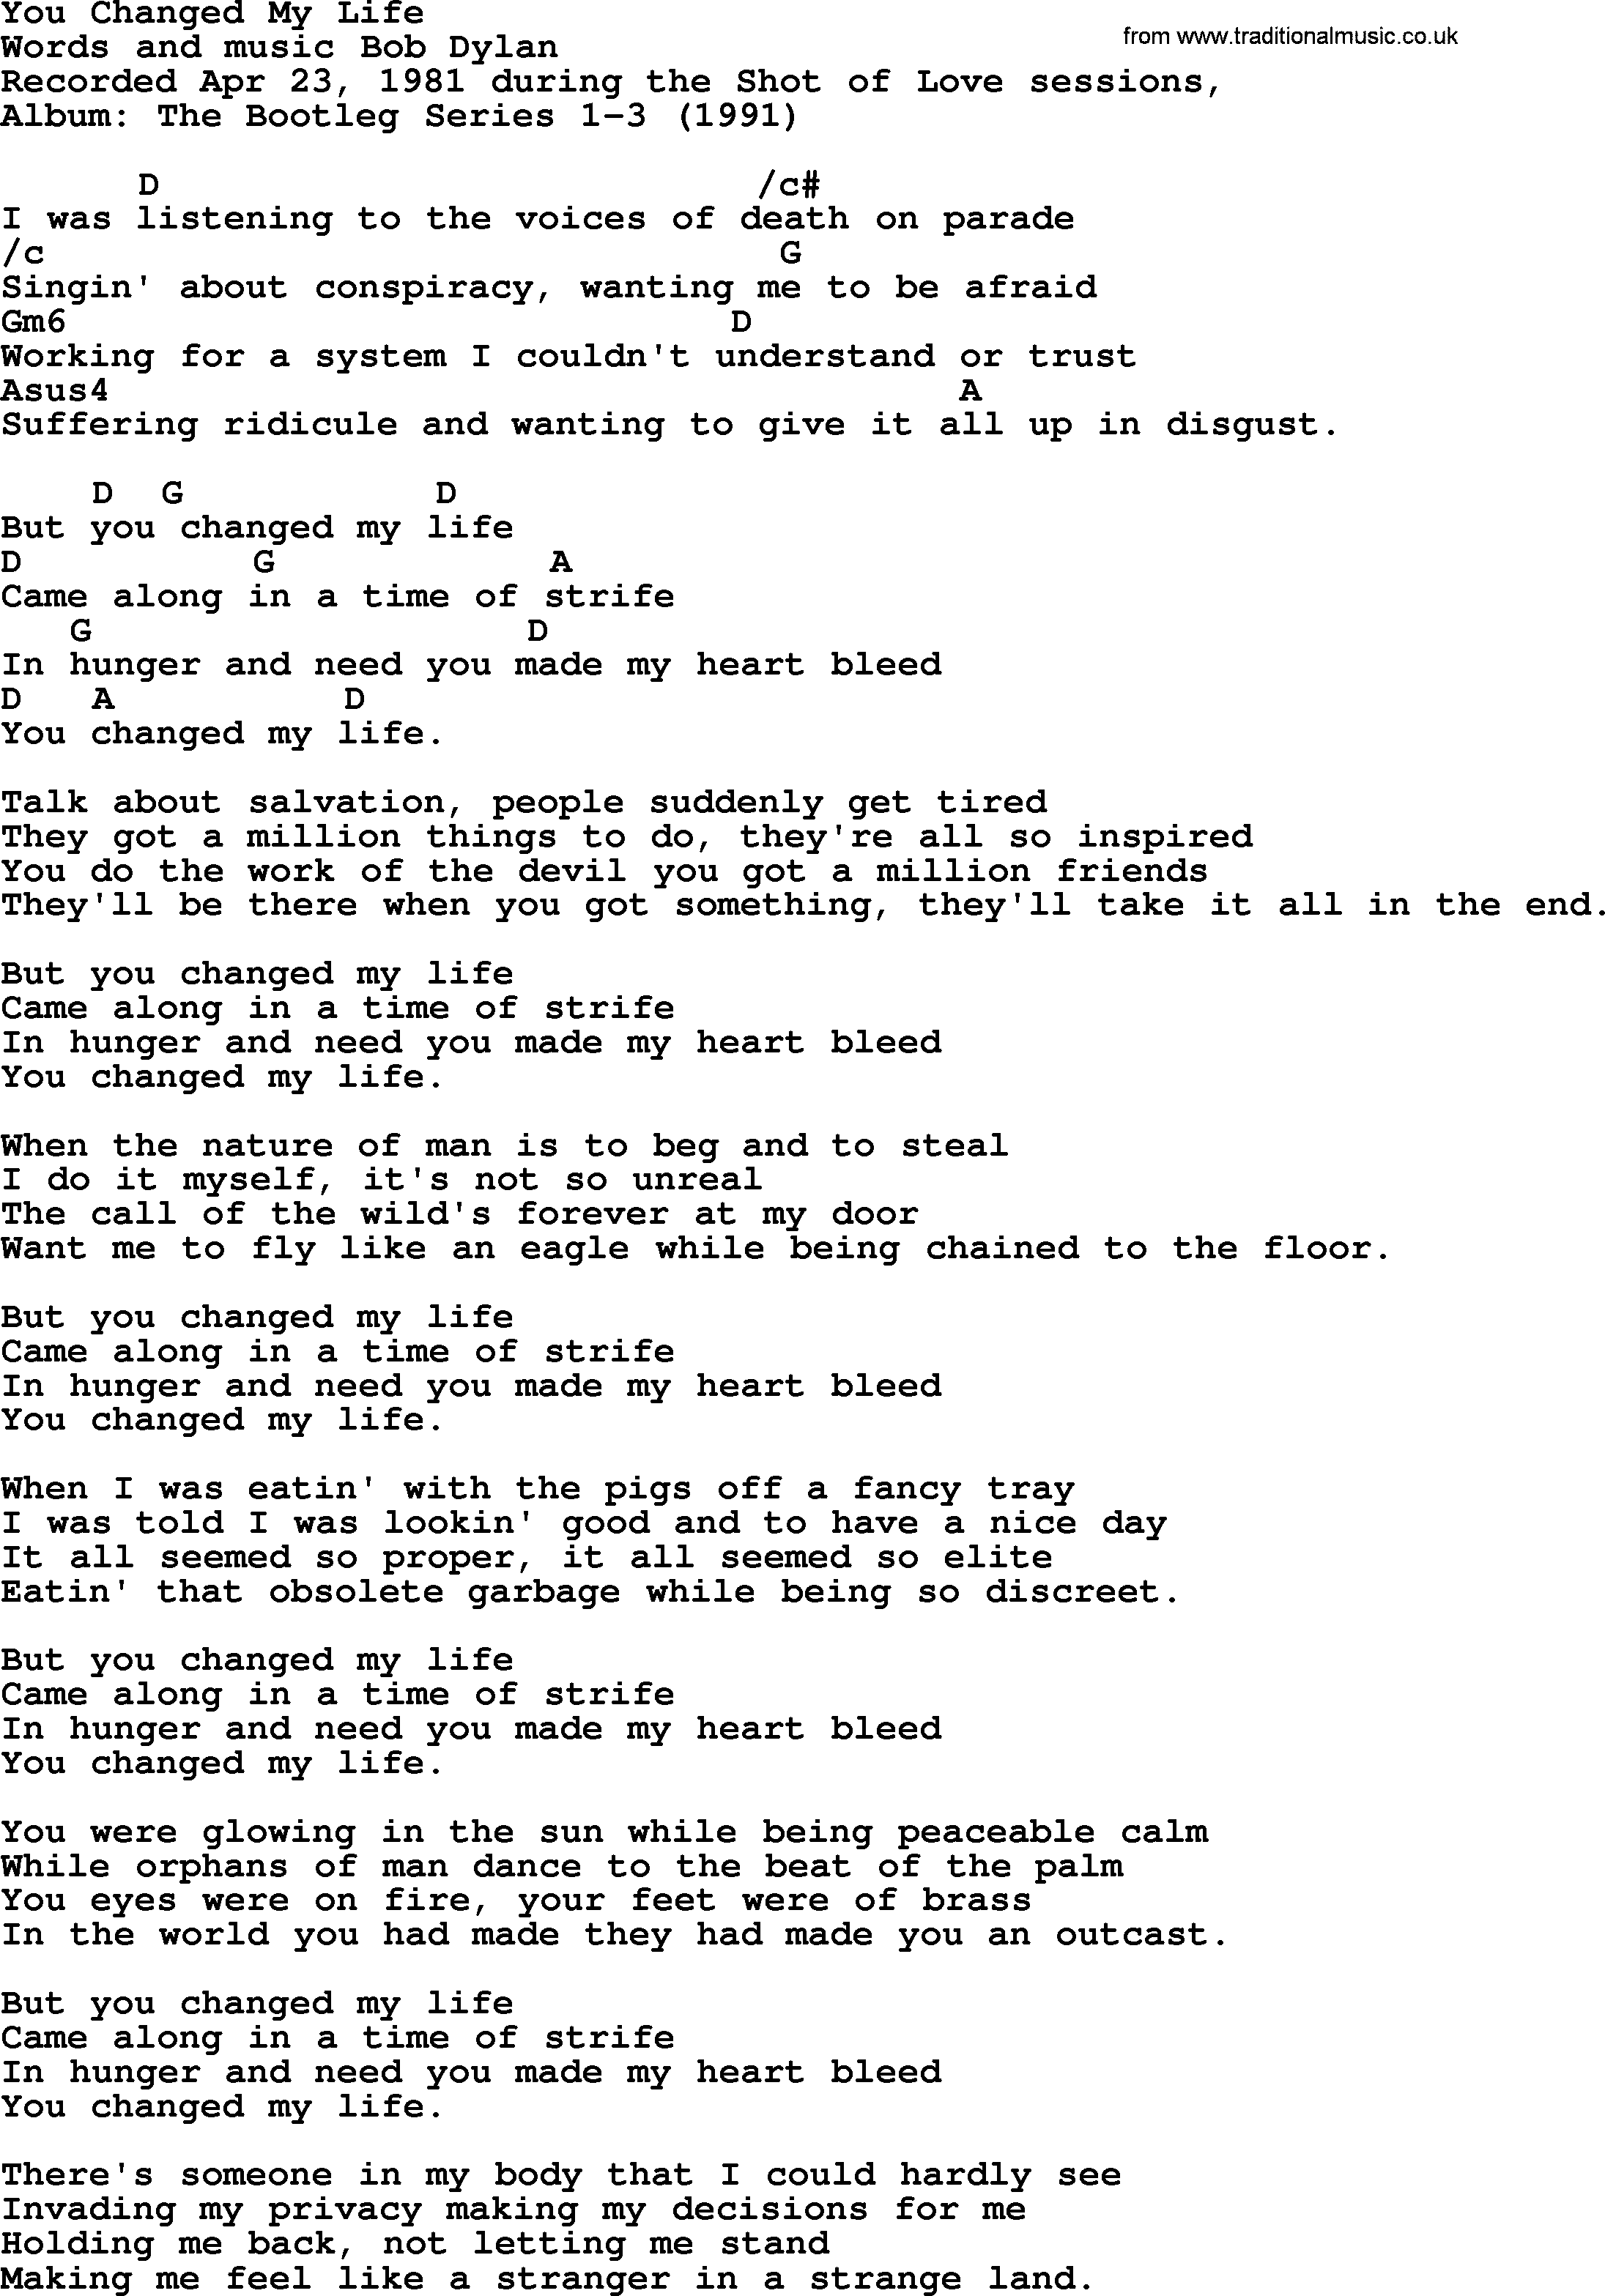 Bob Dylan song - You Changed My Life, lyrics and chords